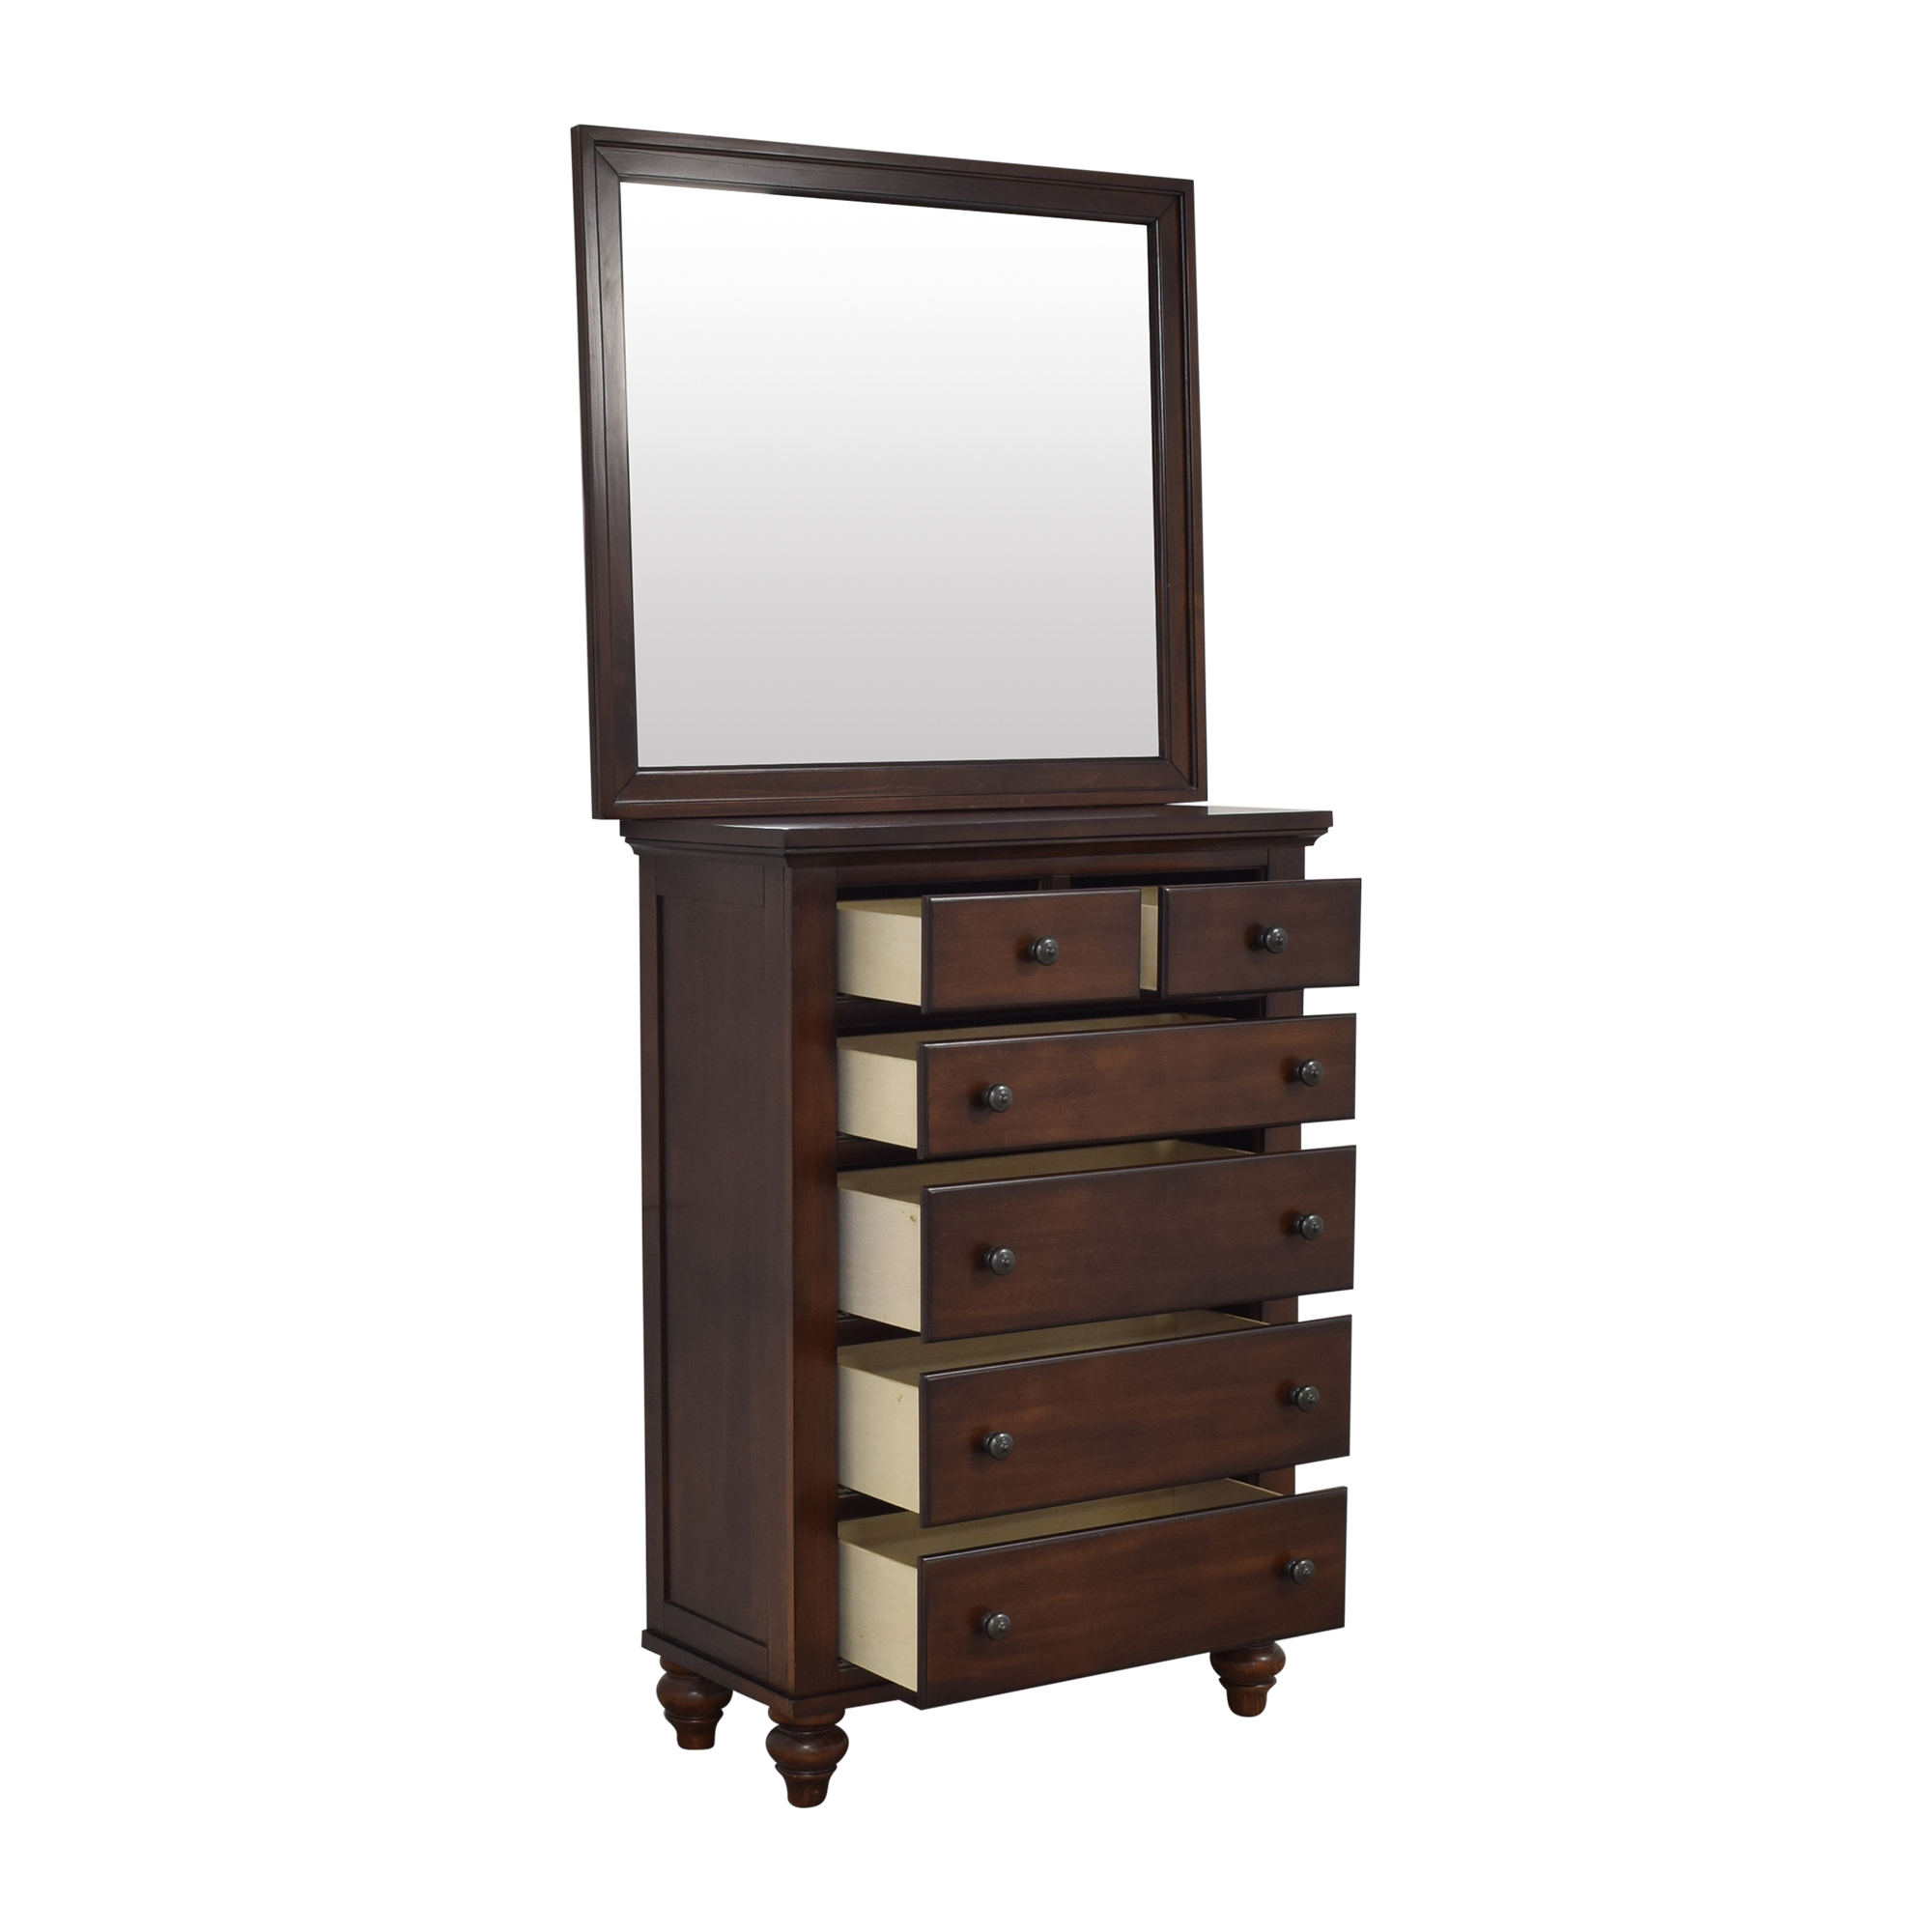 Raymour & Flanigan Raymour & Flanigan Six Drawer Chest with Mirror price